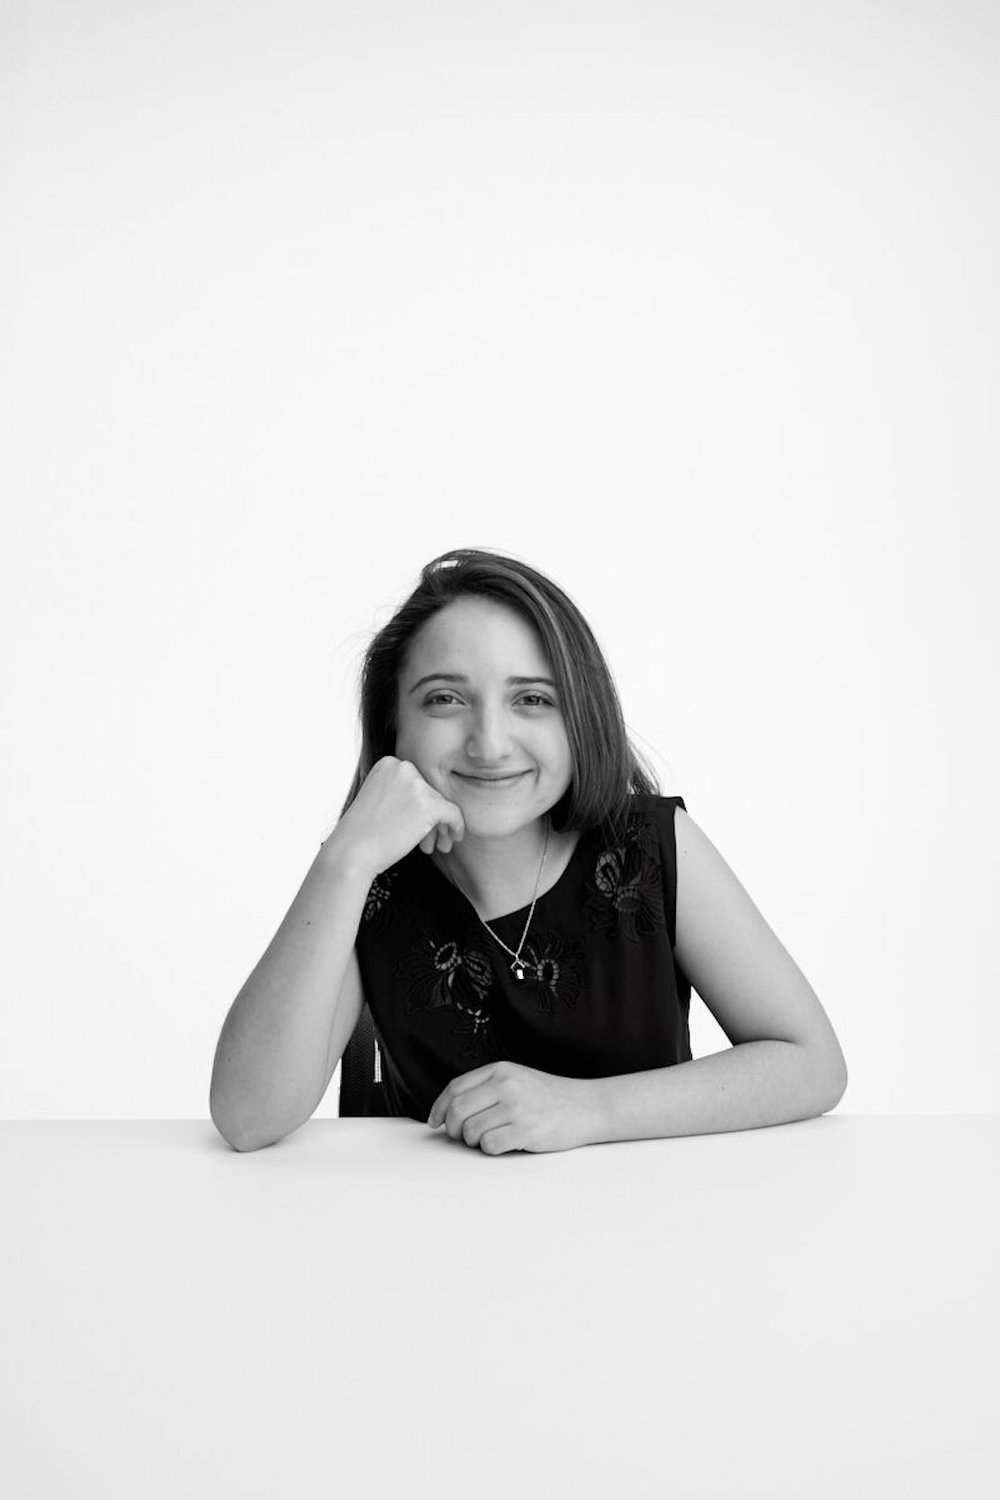 Camila Chiriboga Creative Strategist, Inclusive Design Education: Parsons School of Design Studied: Fashion Design, Creative Entrepreneurships Innovation Field: The intersection of fashion, health, and technology, especially design for people with disabilities.